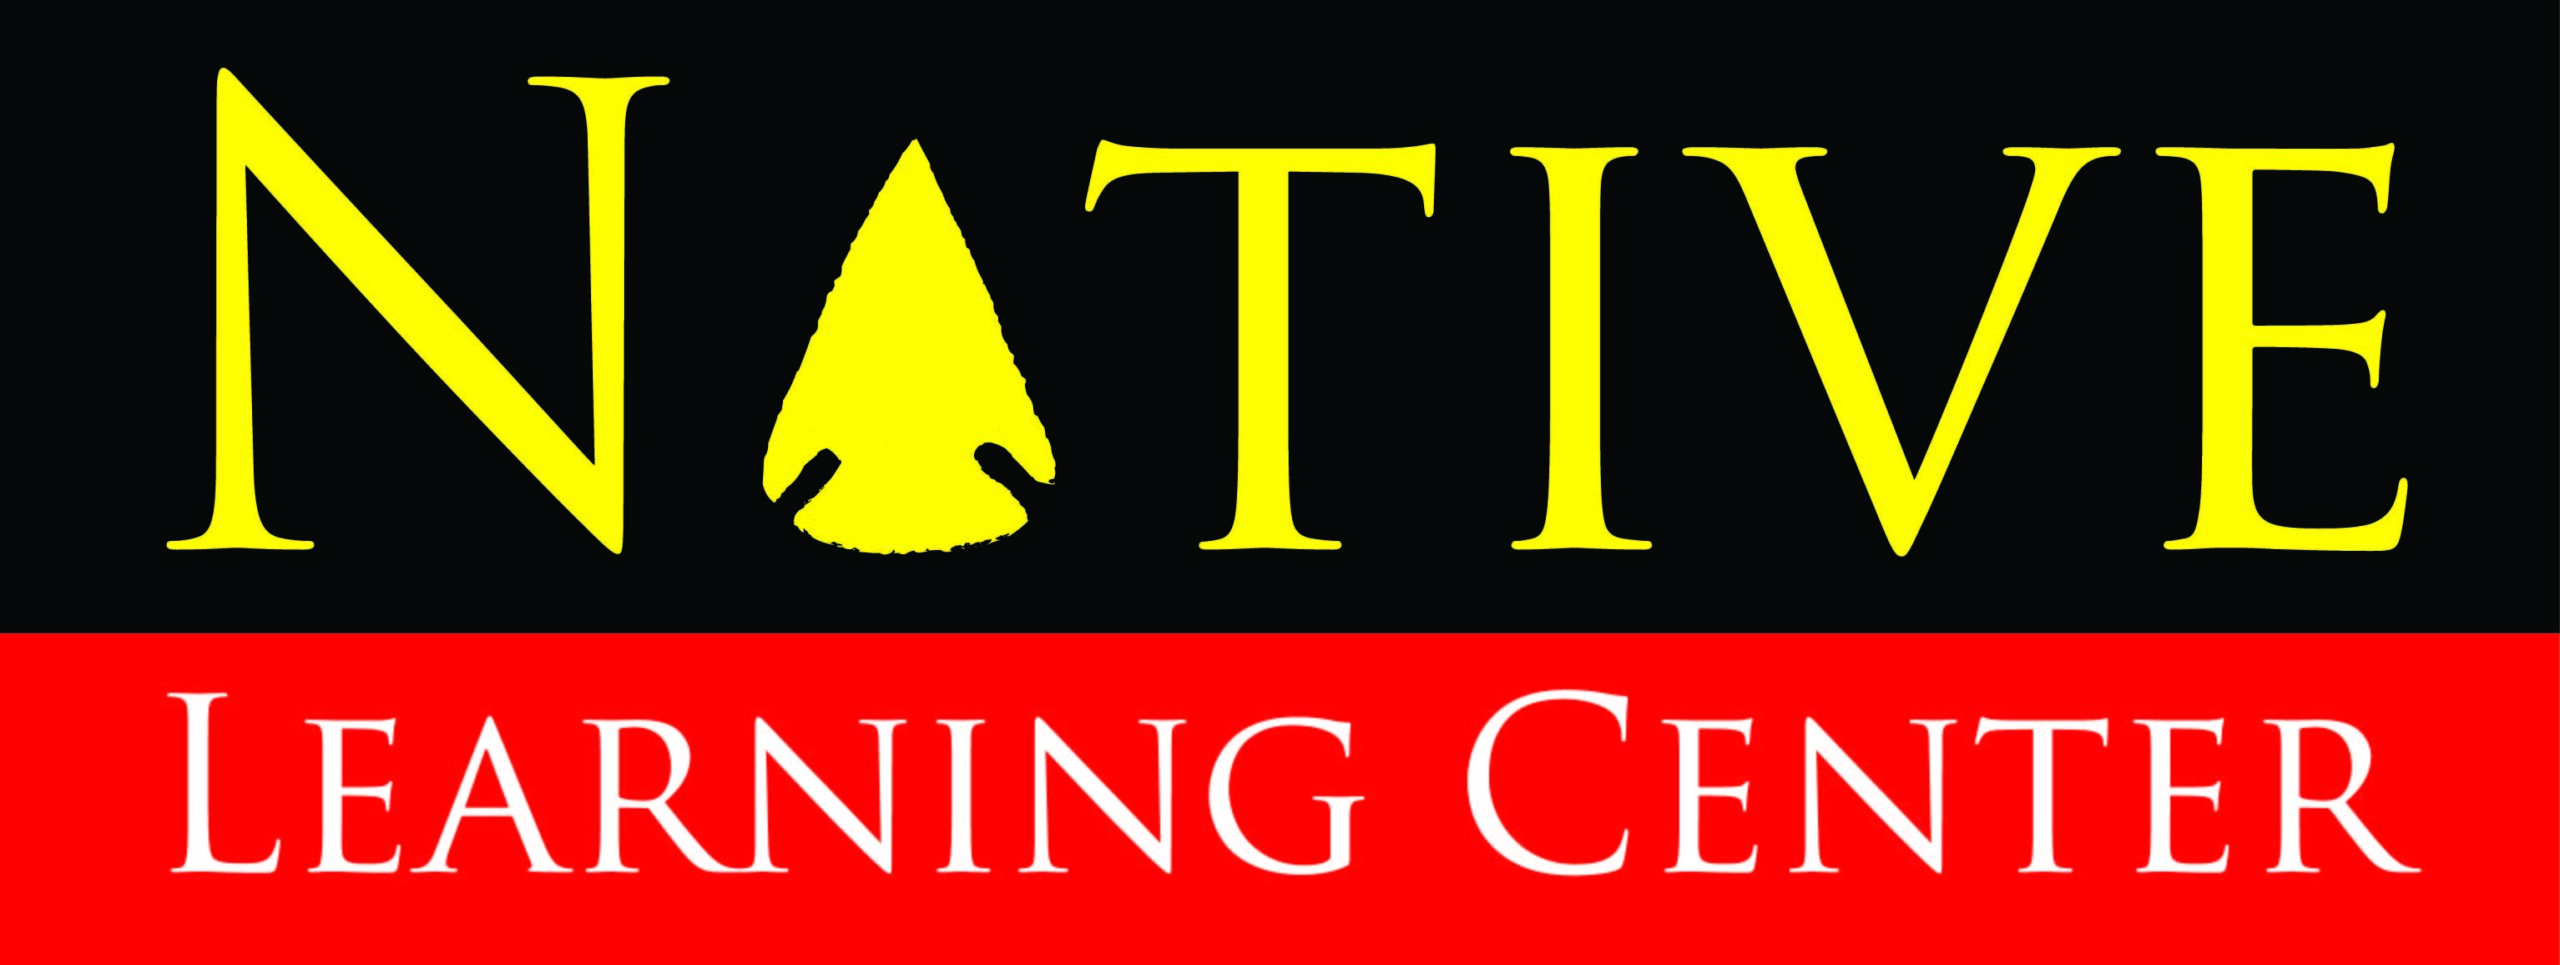 Native Learning Center